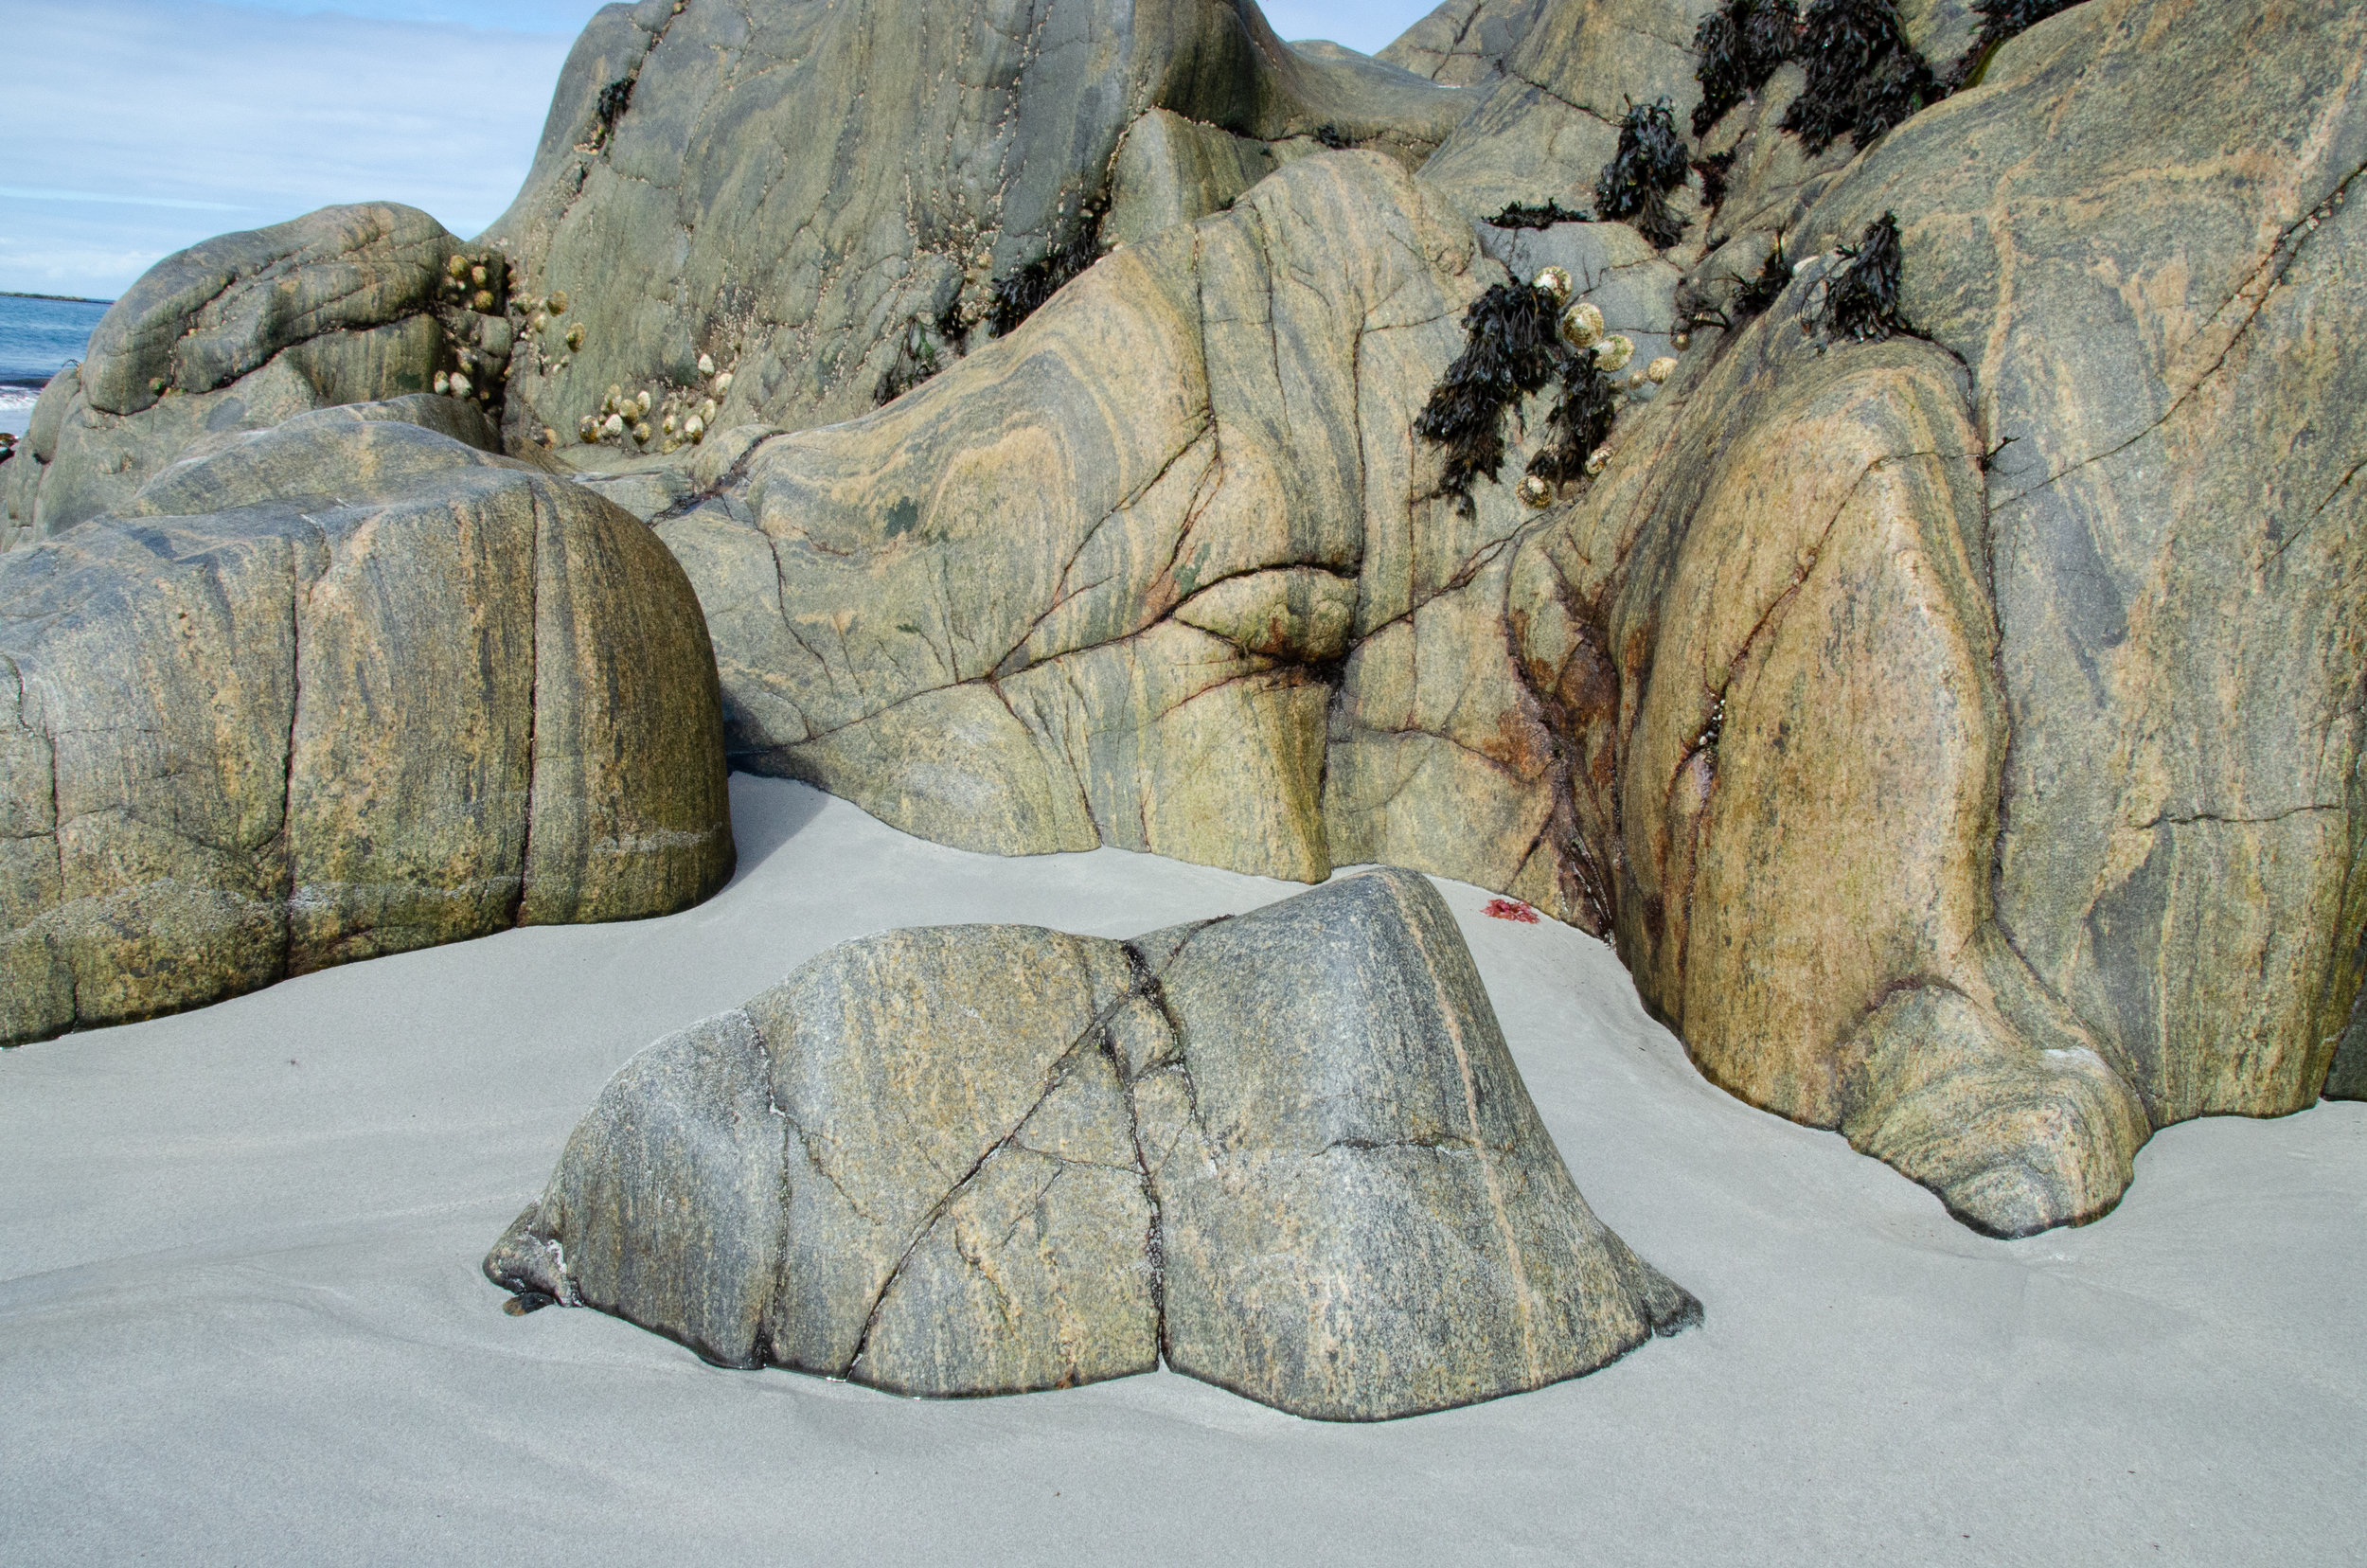 The swirly-patterned rocks at the Maze Beach almost looked like they were melting into the sand.